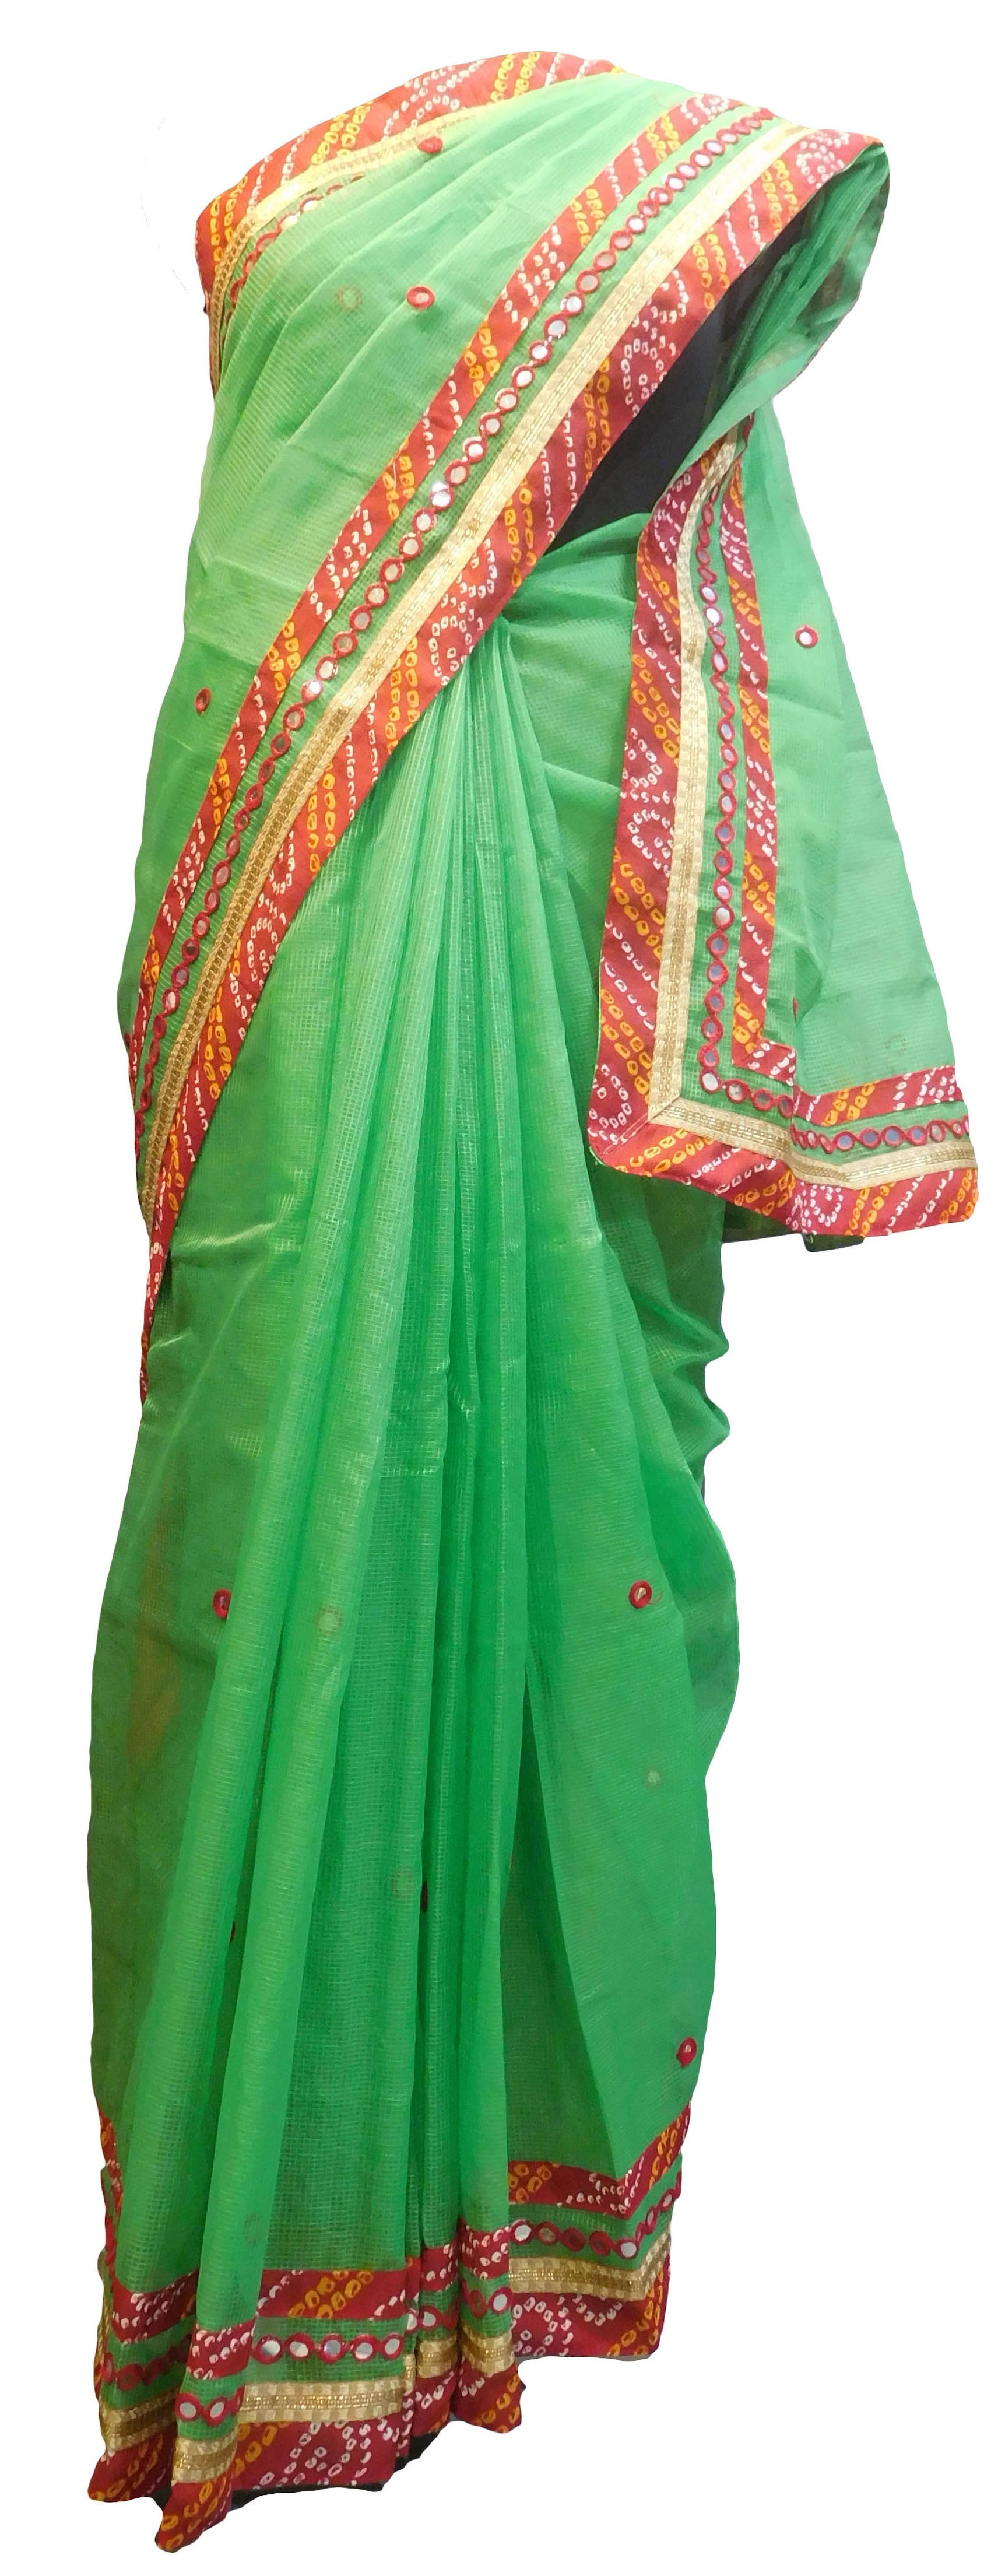 SMSAREE Green Designer Wedding Partywear Supernet (Cotton) Thread Mirror & Zari Hand Embroidery Work Bridal Saree Sari With Blouse Piece E650